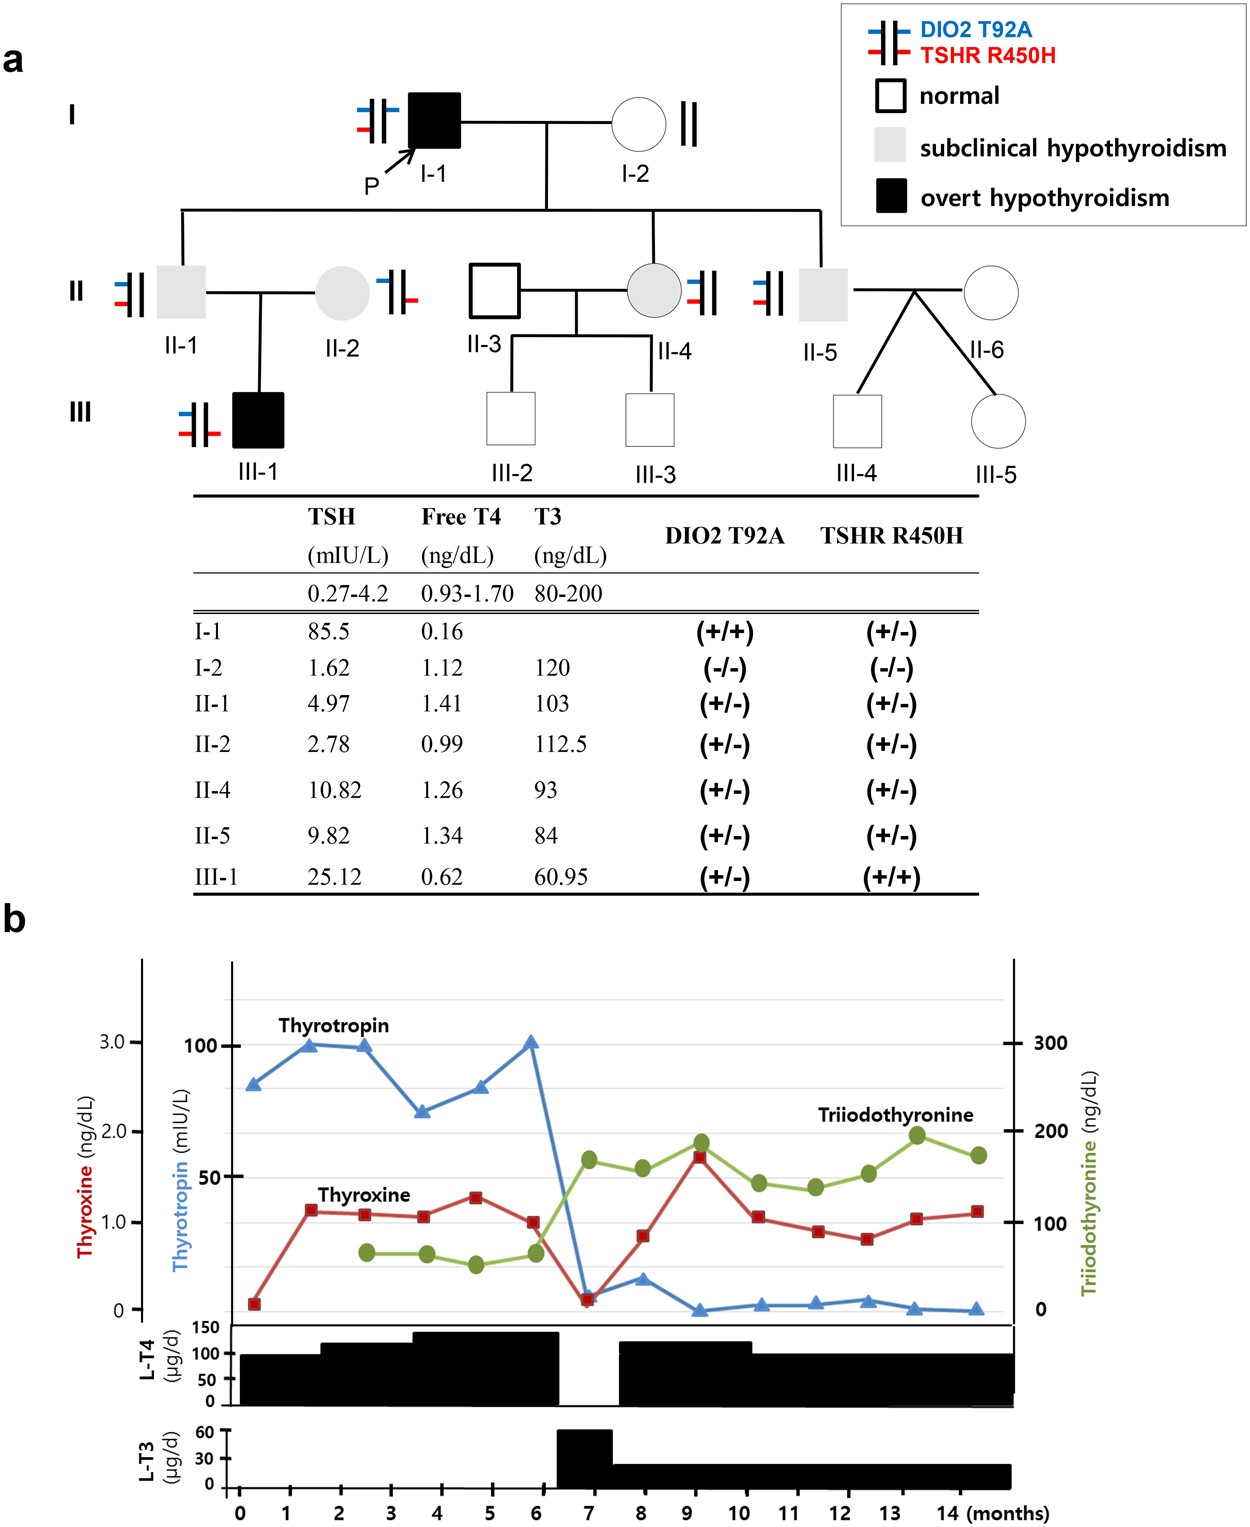 Concurrent TSHR mutations and DIO2 T92A polymorphism result